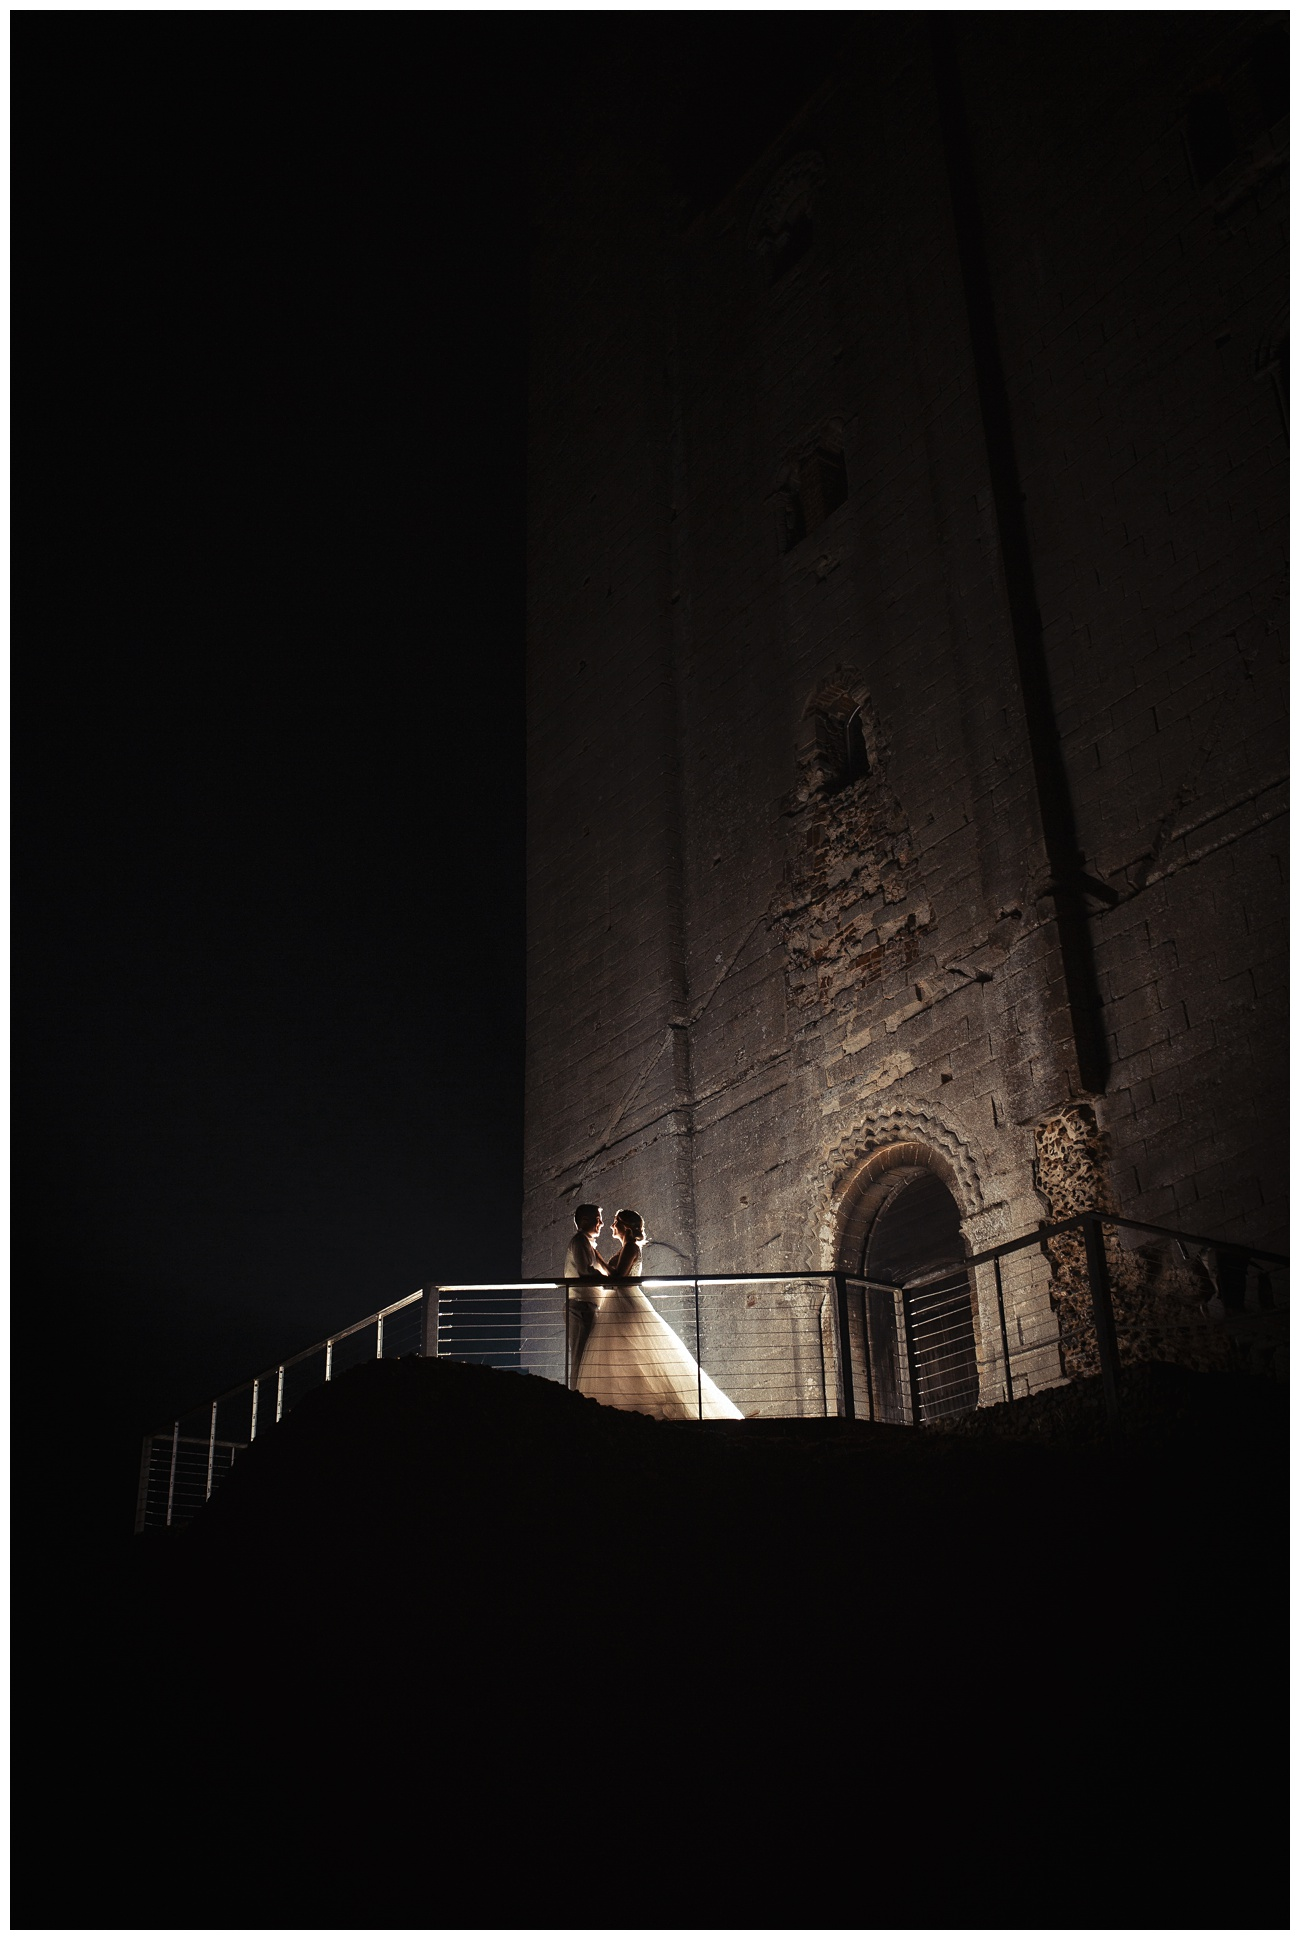 The bride and groom holding each other outside the castle at night